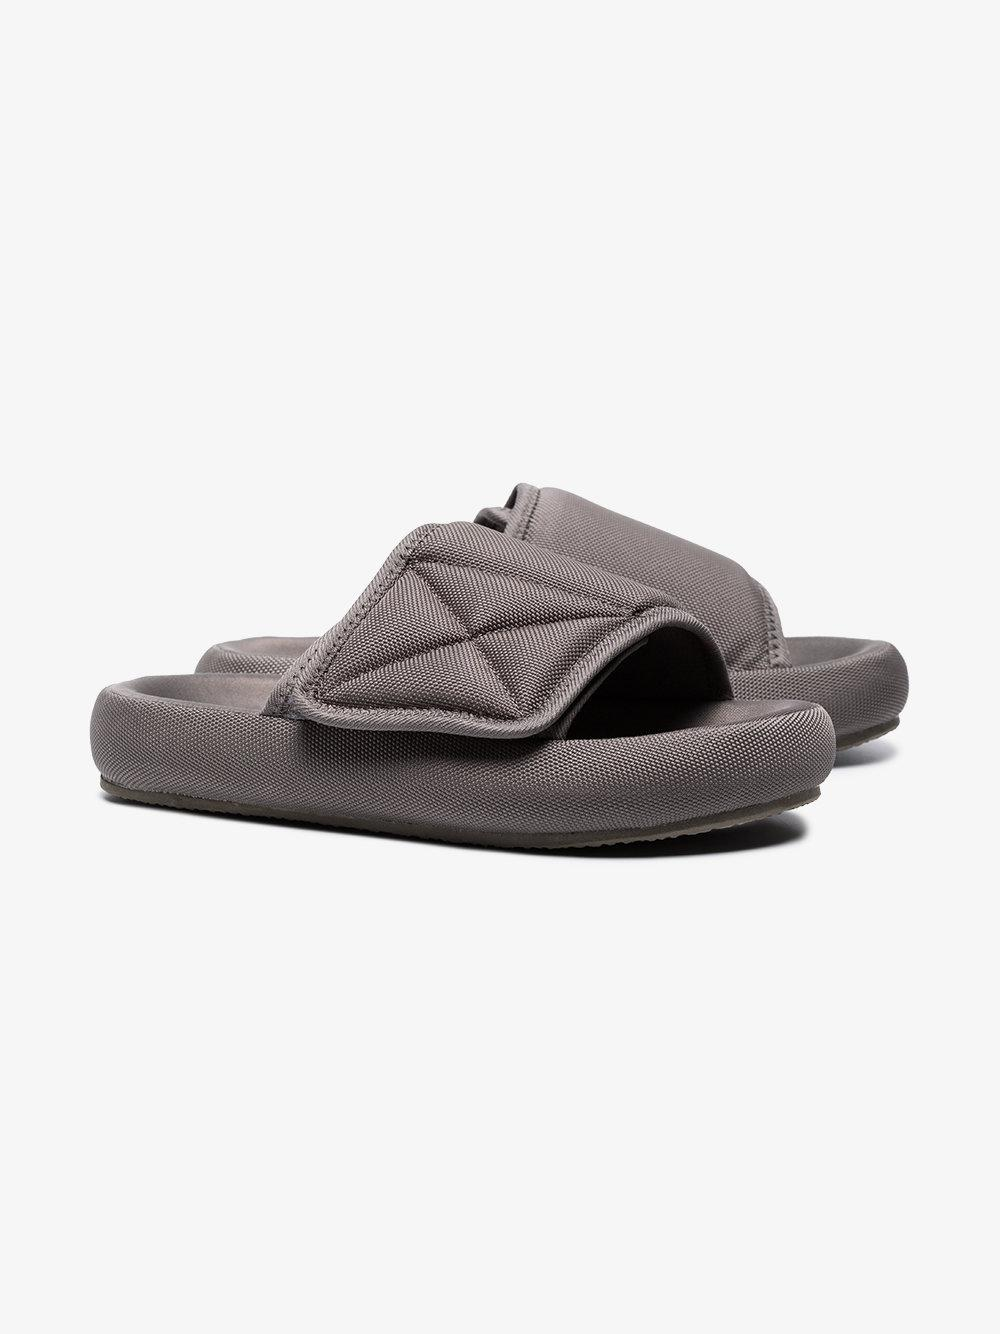 52d967985a7 Lyst - Yeezy Grey Flatform Slippers in Gray